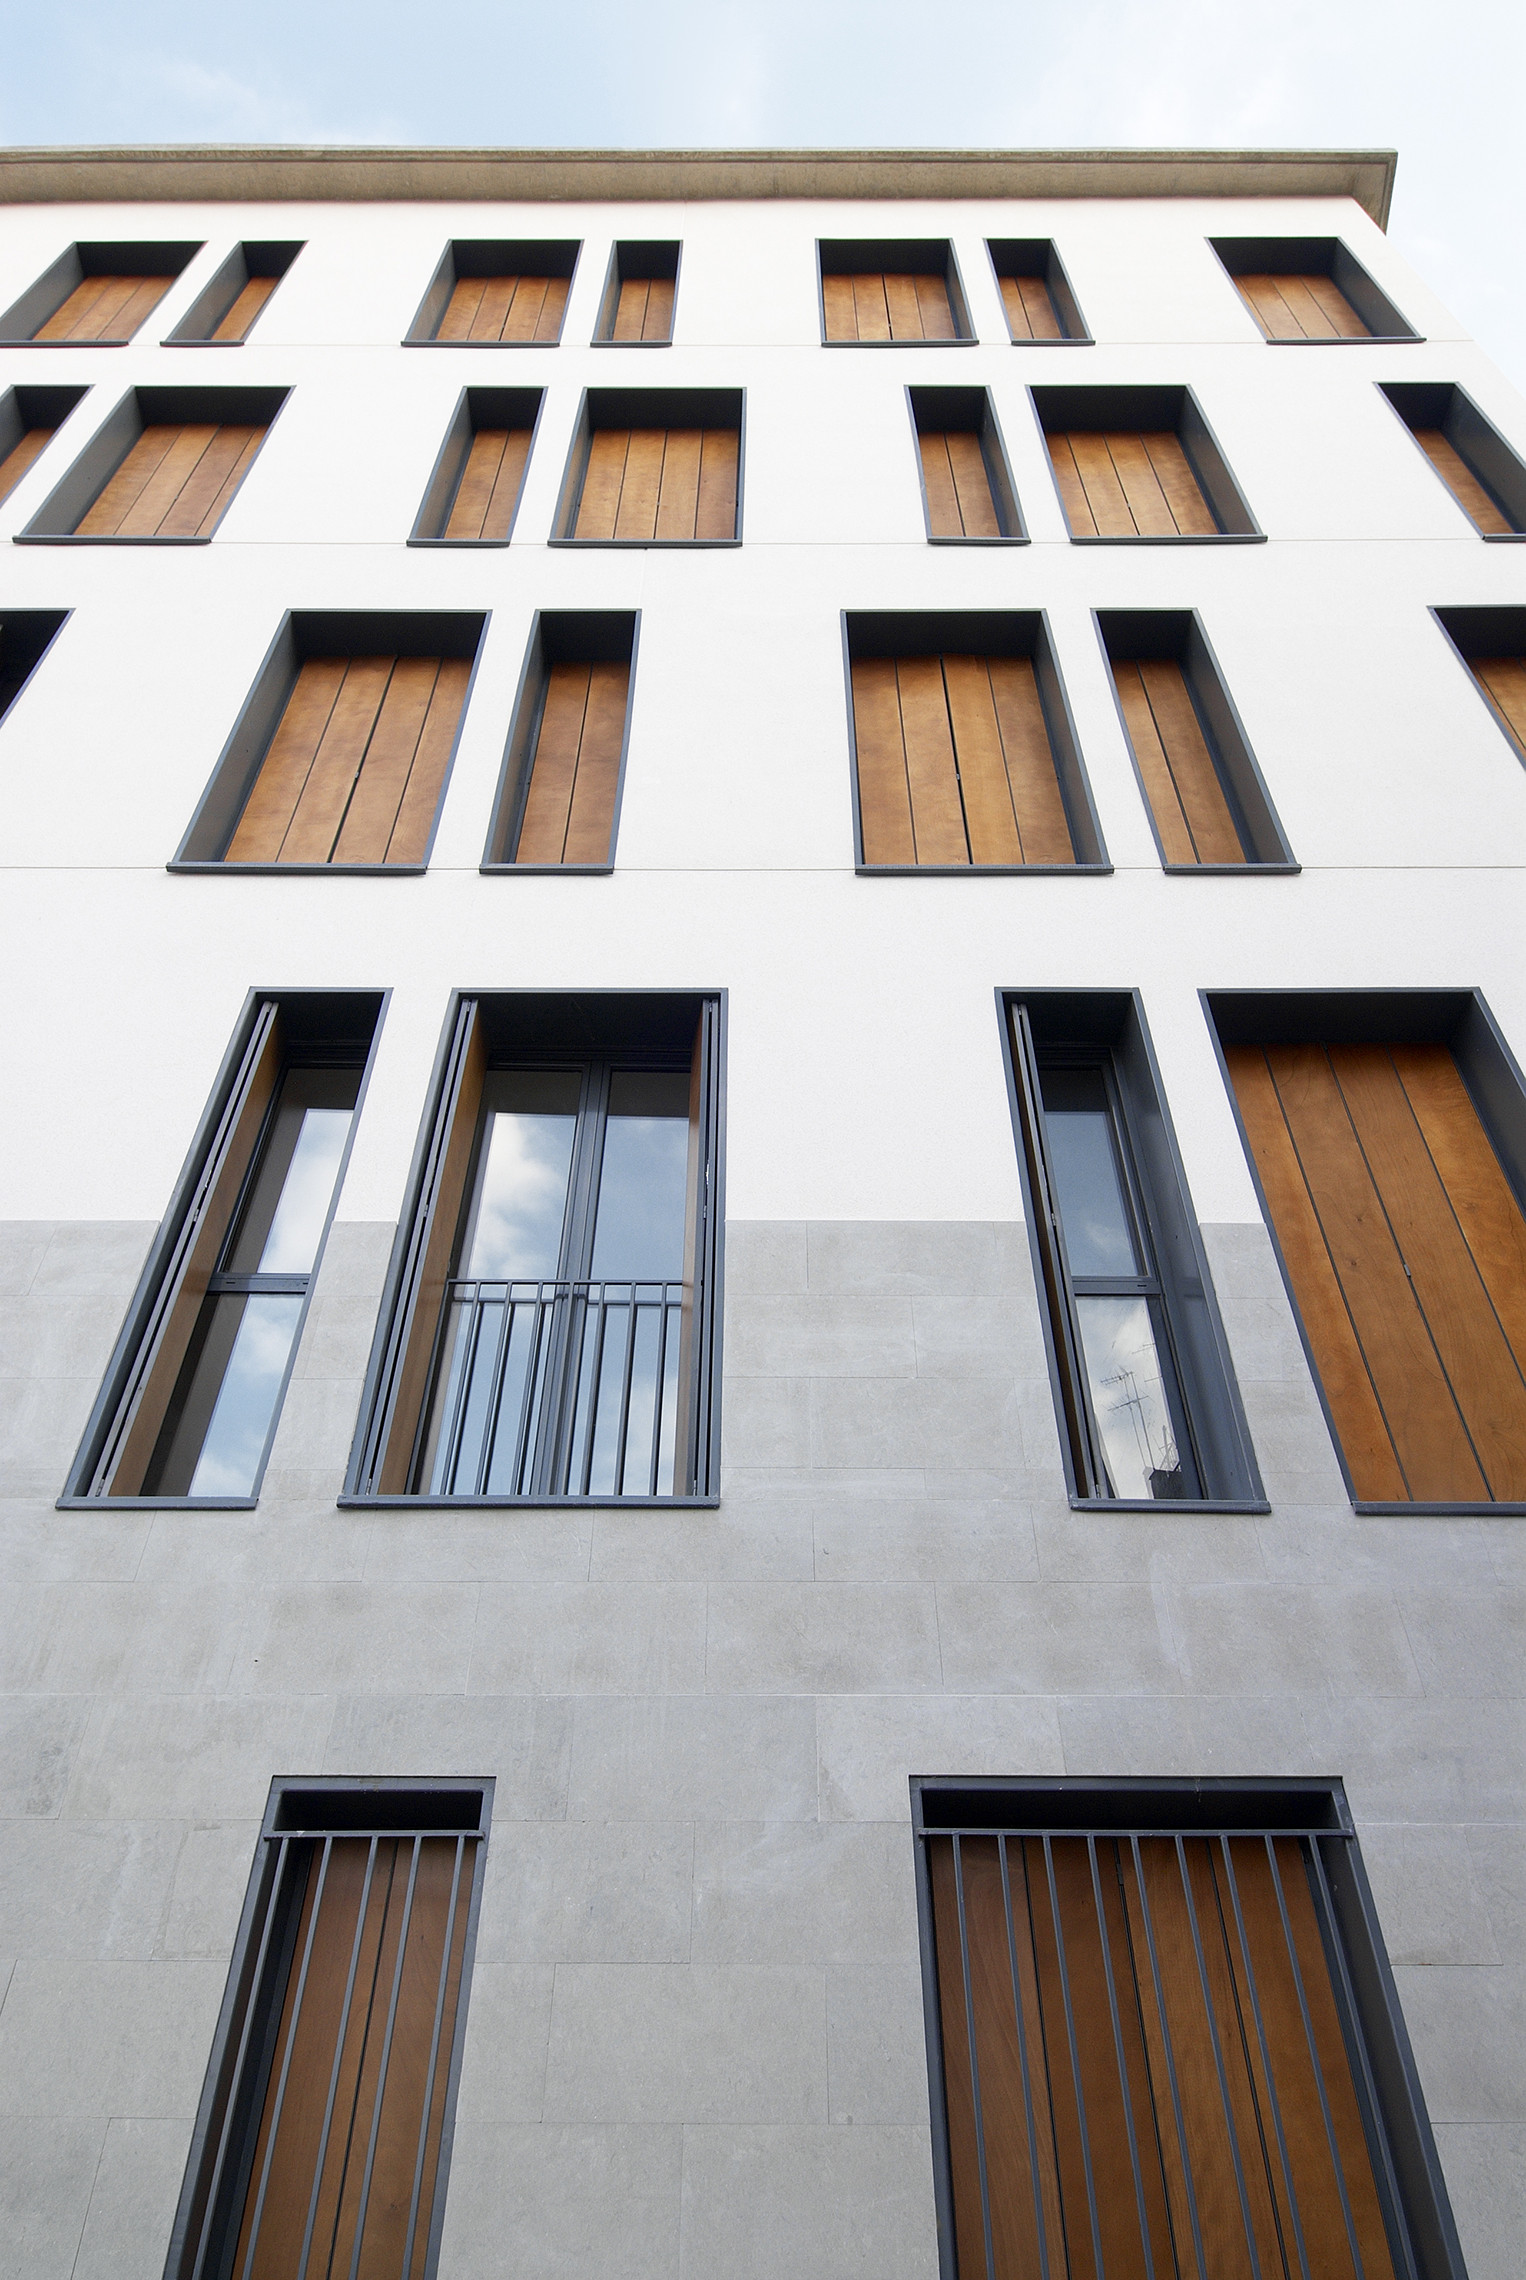 Gallery of 19 dwellings on viana street garc a floquet for Architecture windows